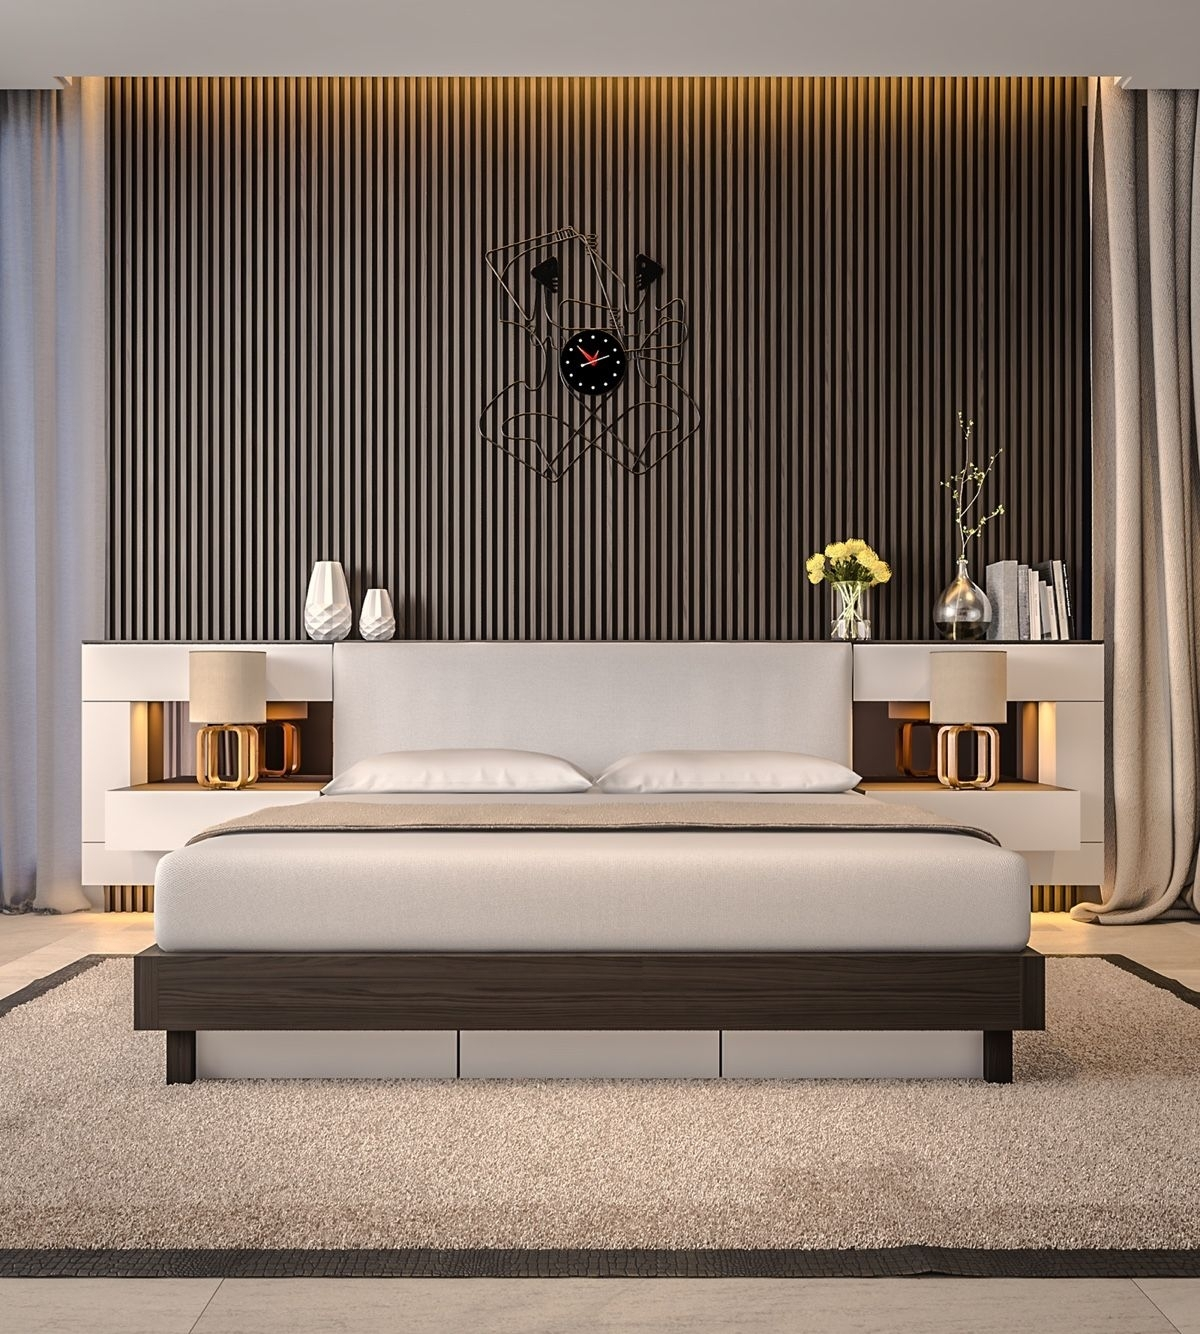 Bedroom Design: Accent Wall Ideas For Living Room Wallpaper Accent In Best And Newest Wallpaper Wall Accents (View 11 of 15)